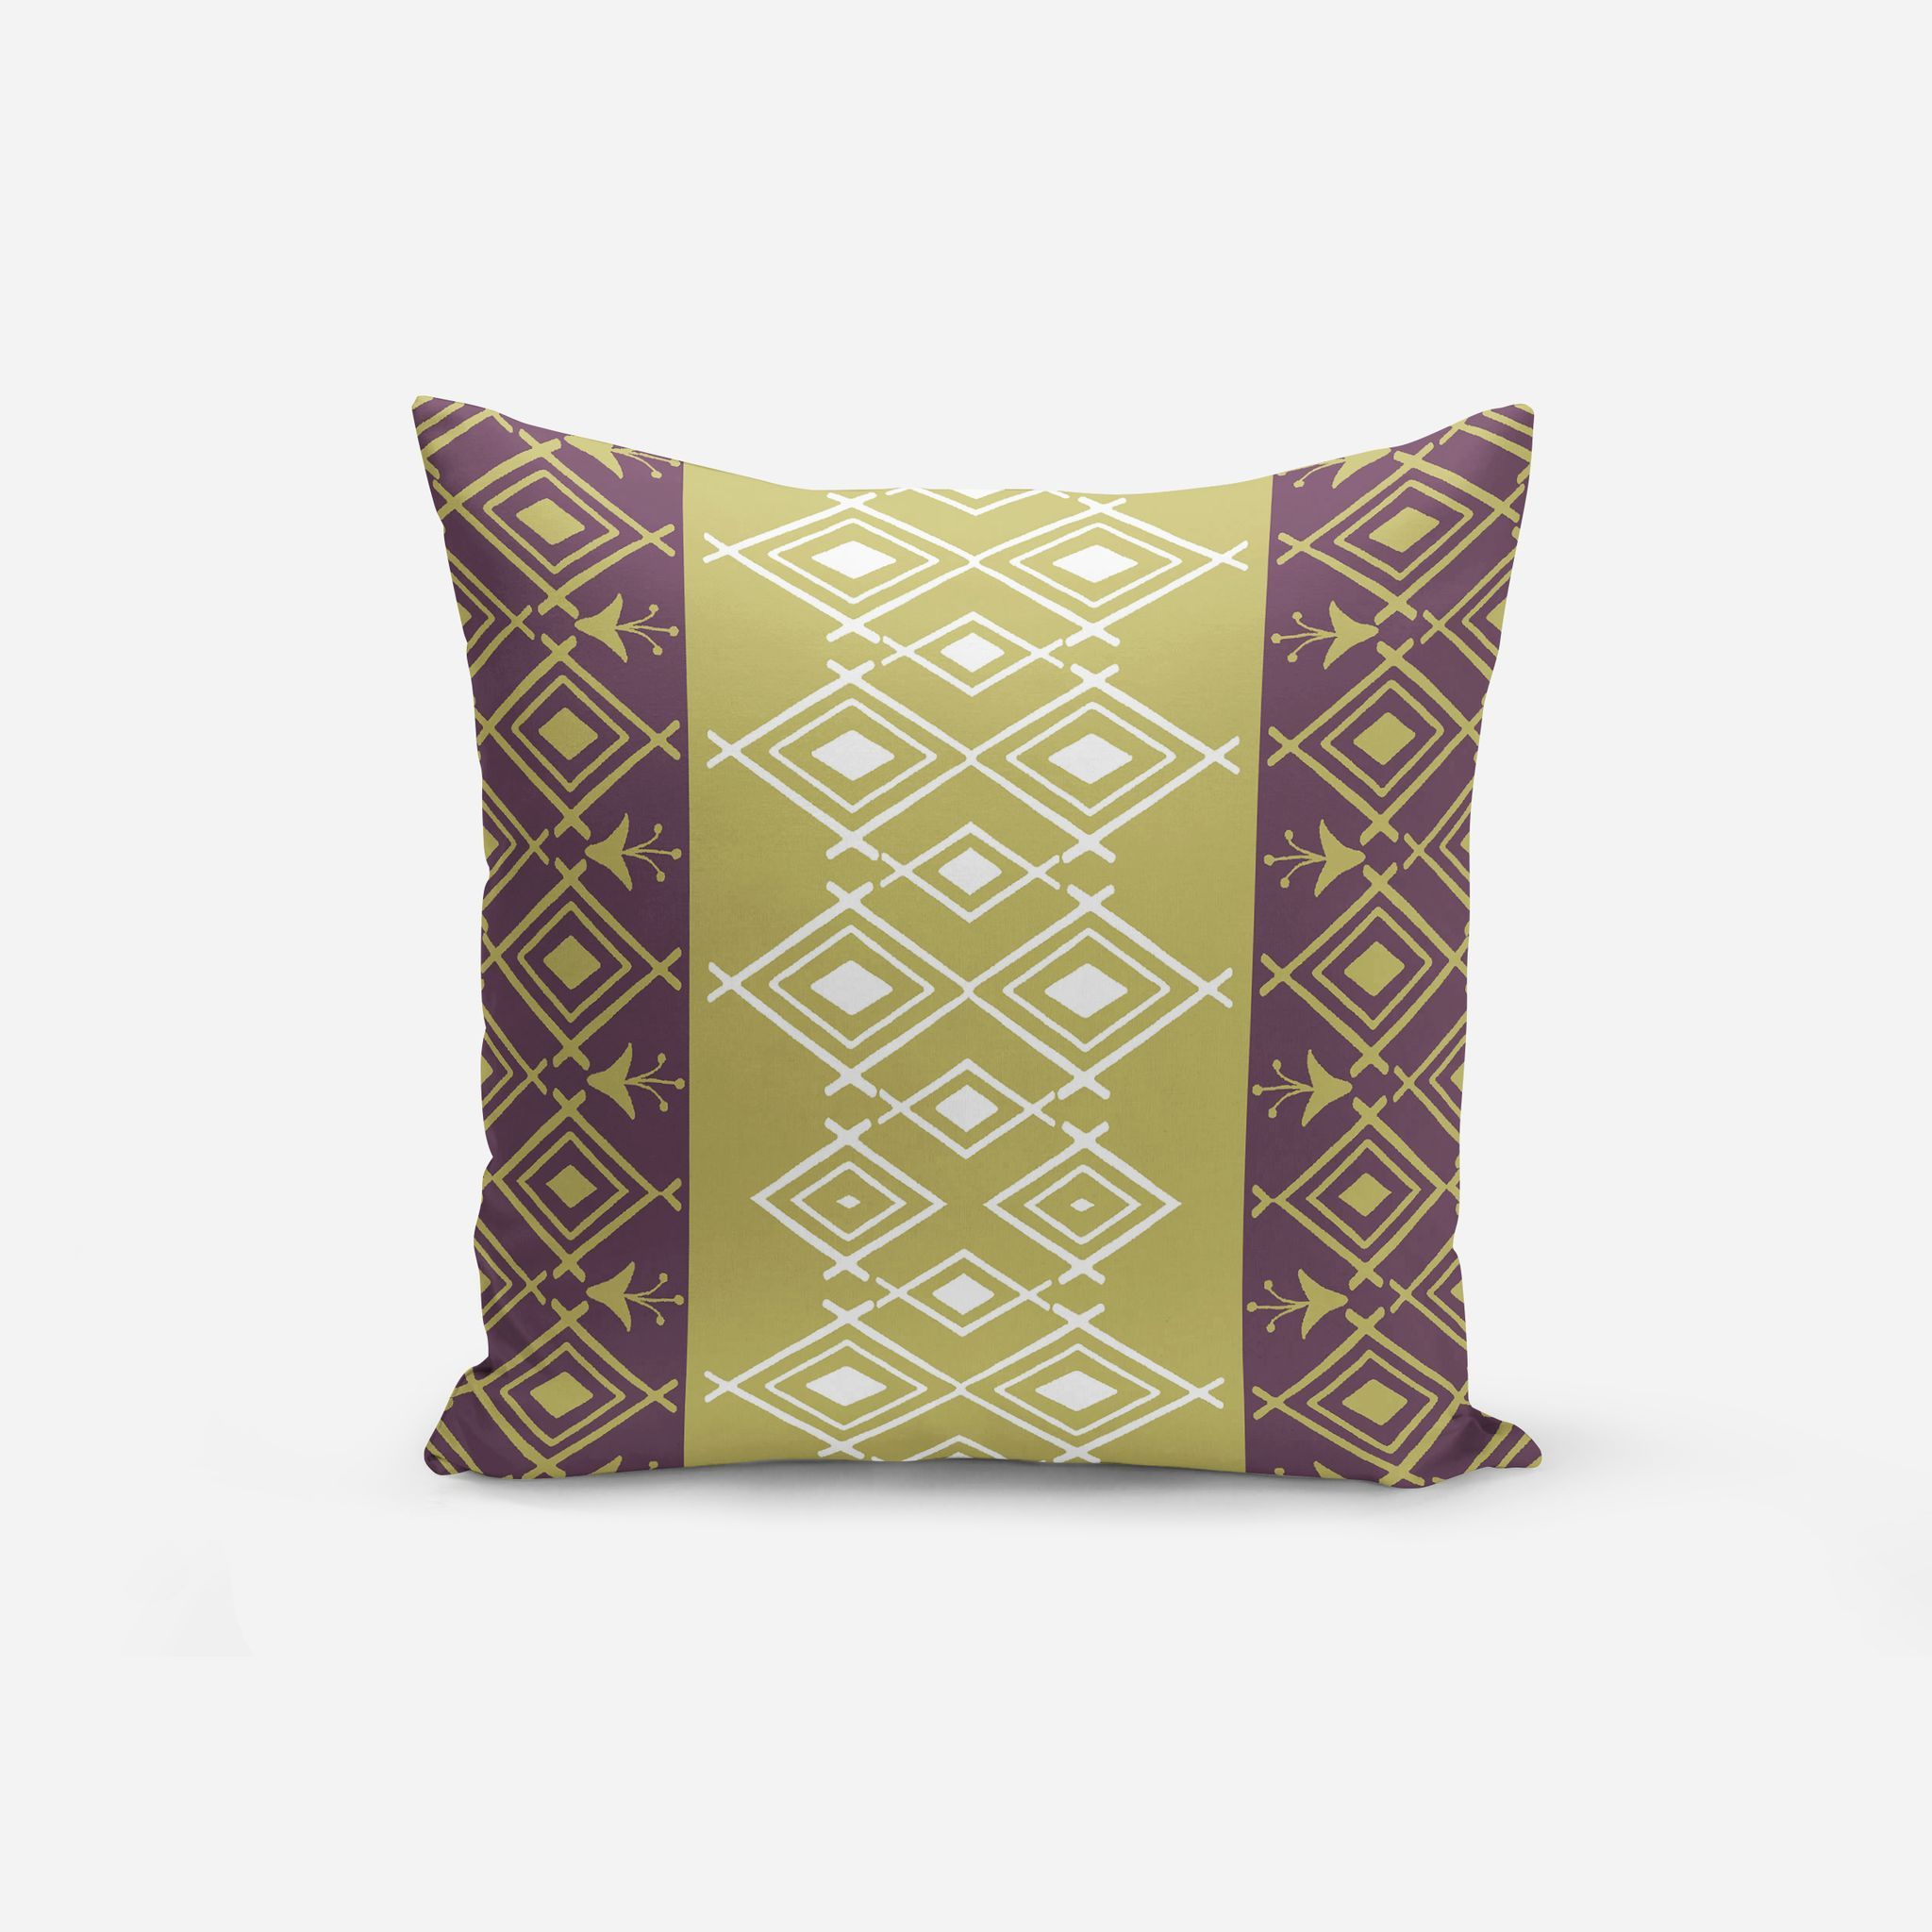 for white purple modern decor room and pillow black covers masculine living pillows couch decorative throw small